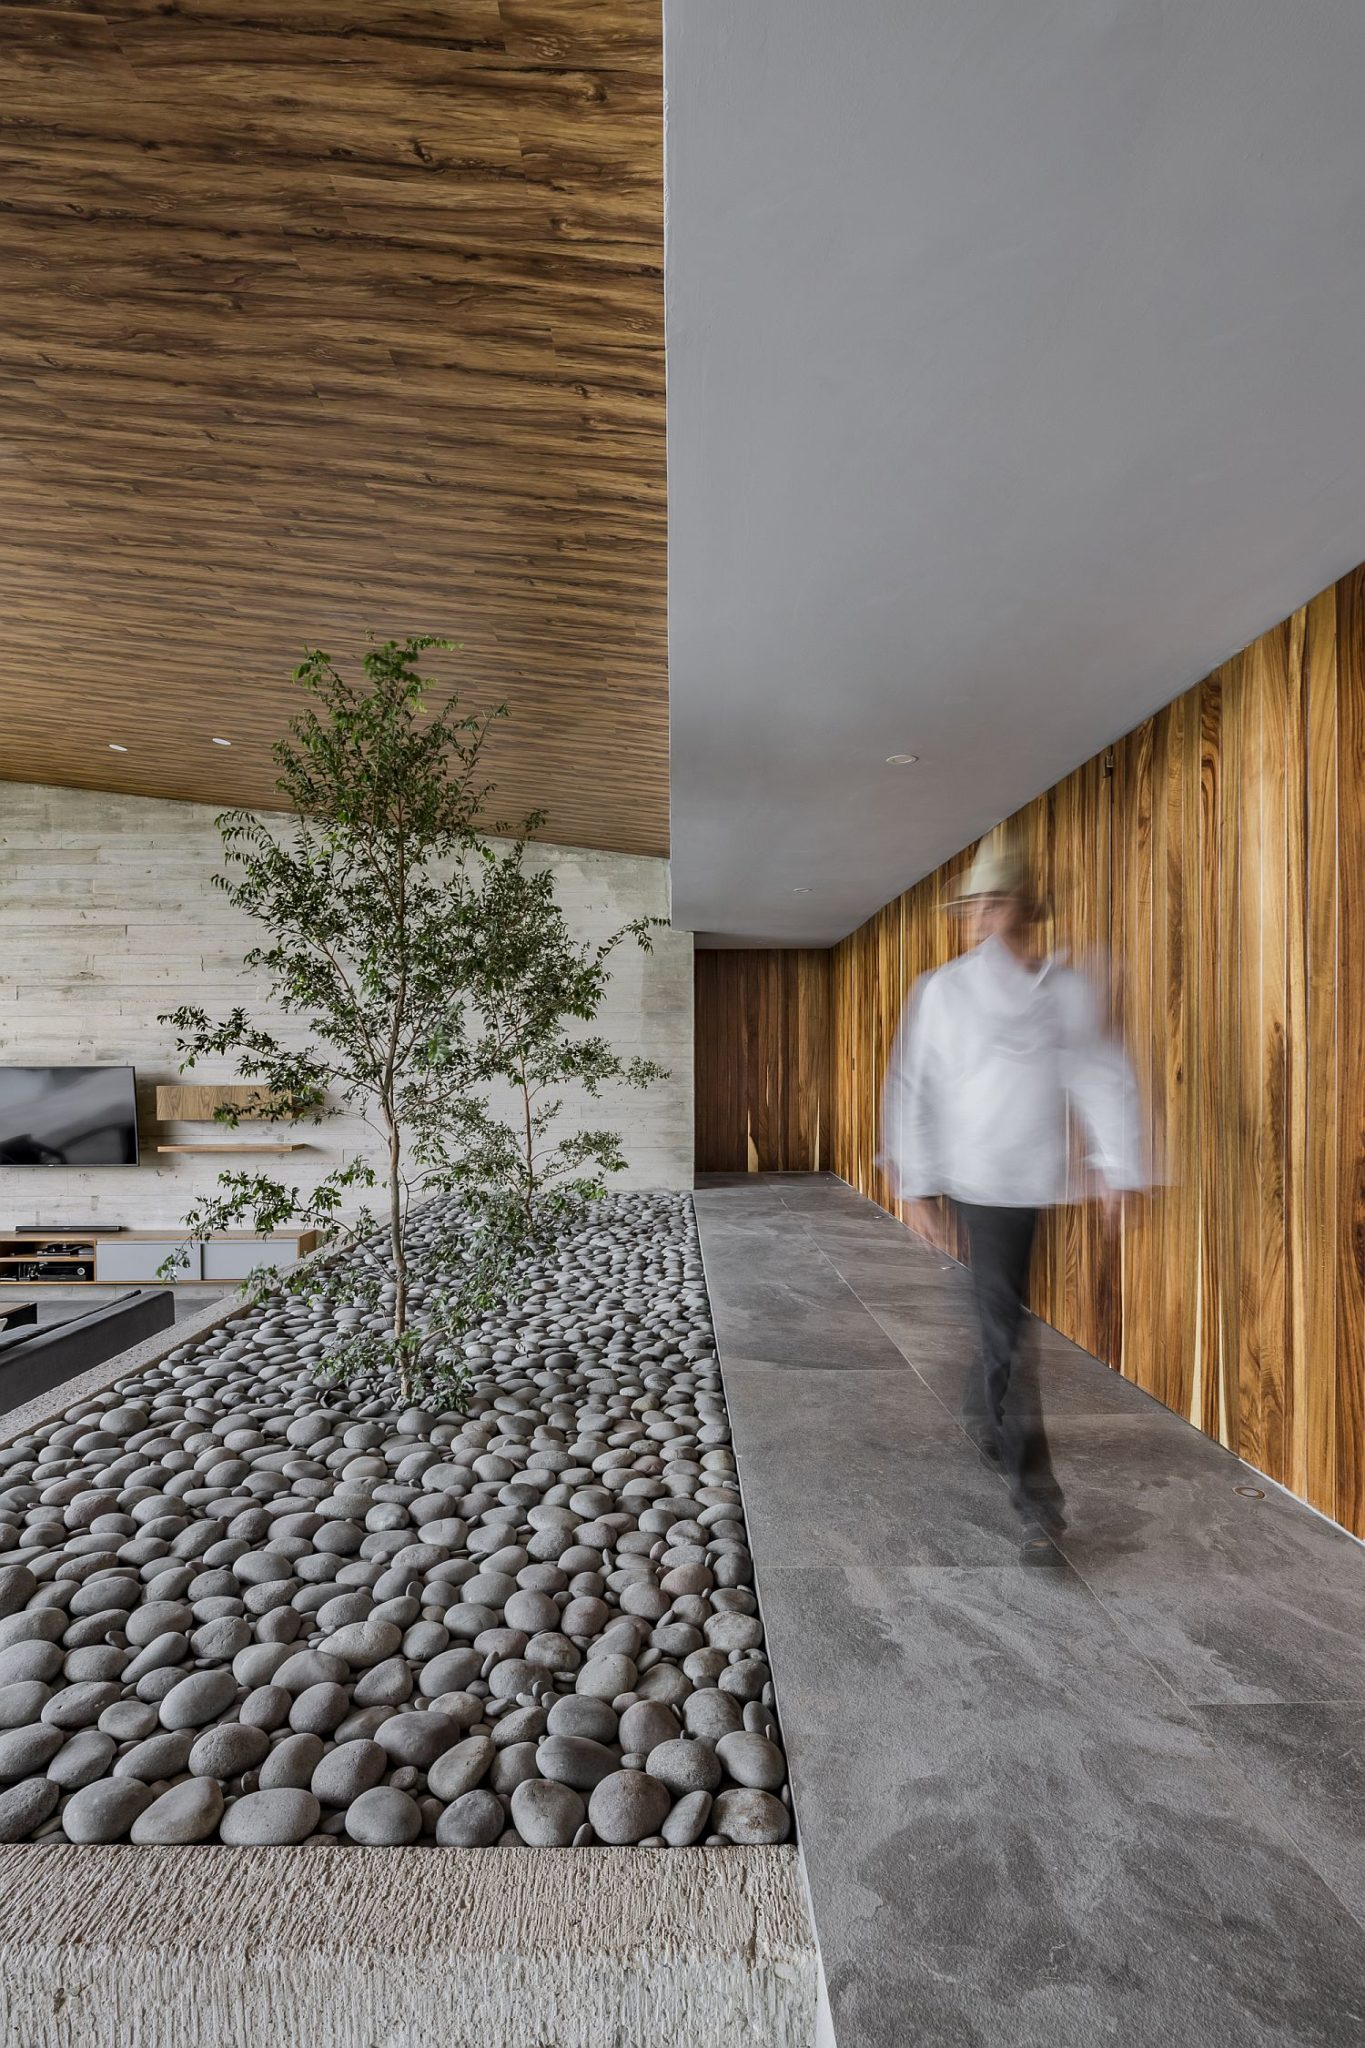 Small river rocks and a hint of greenery for the interior